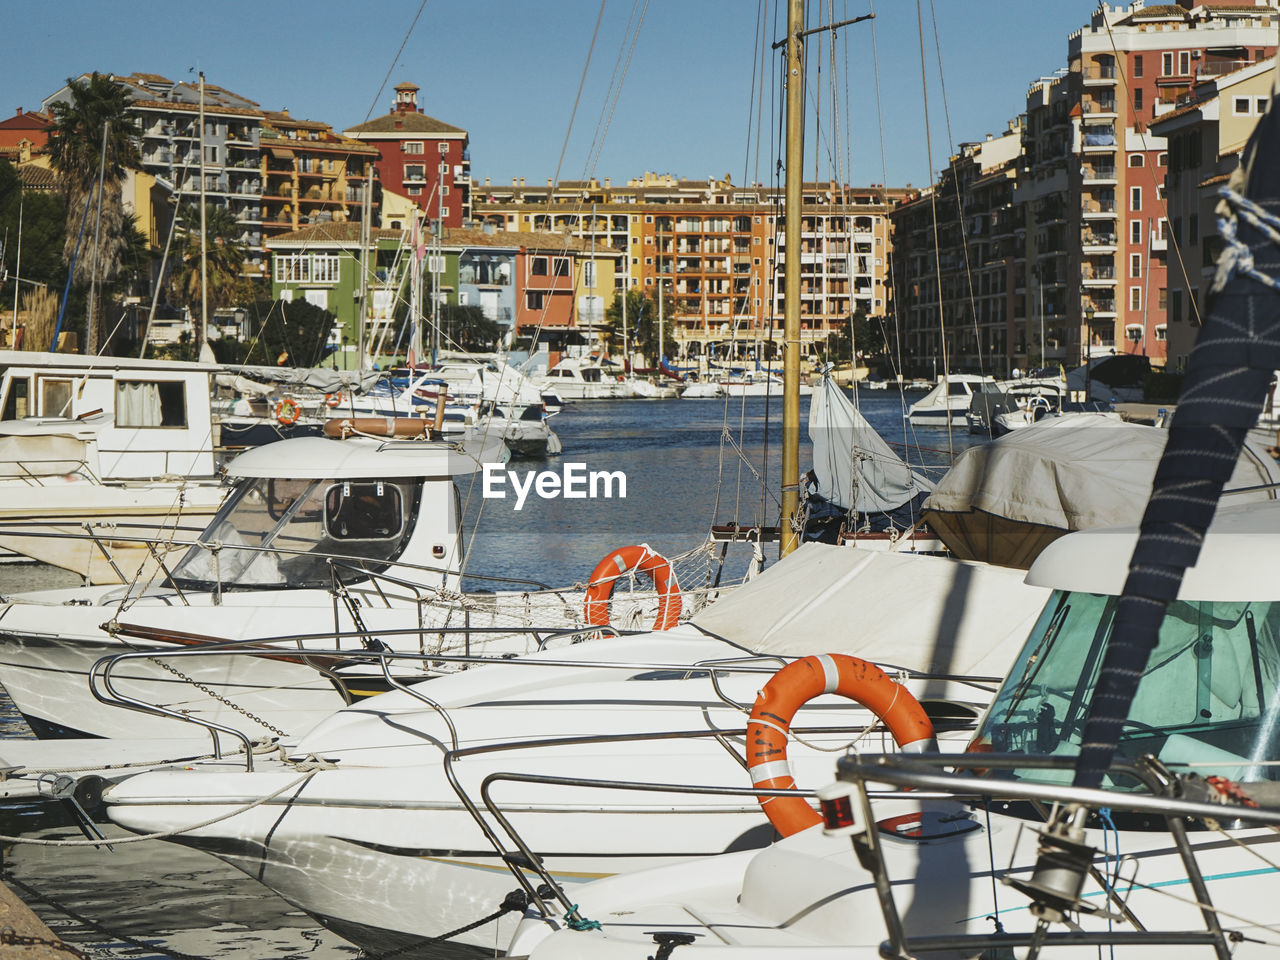 SAILBOATS MOORED IN HARBOR BY BUILDINGS IN CITY